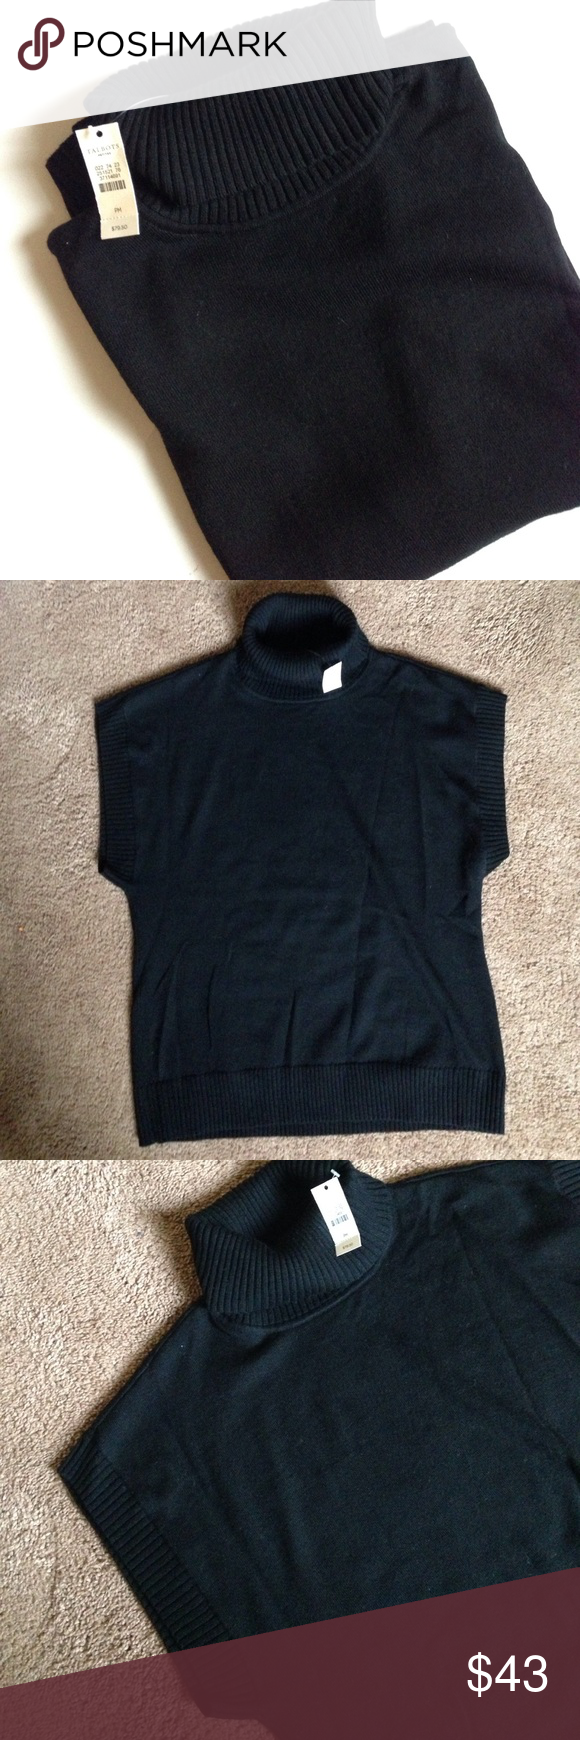 Talbots turtle neck short sleeve sweater NWT | Talbots, Turtle and ...